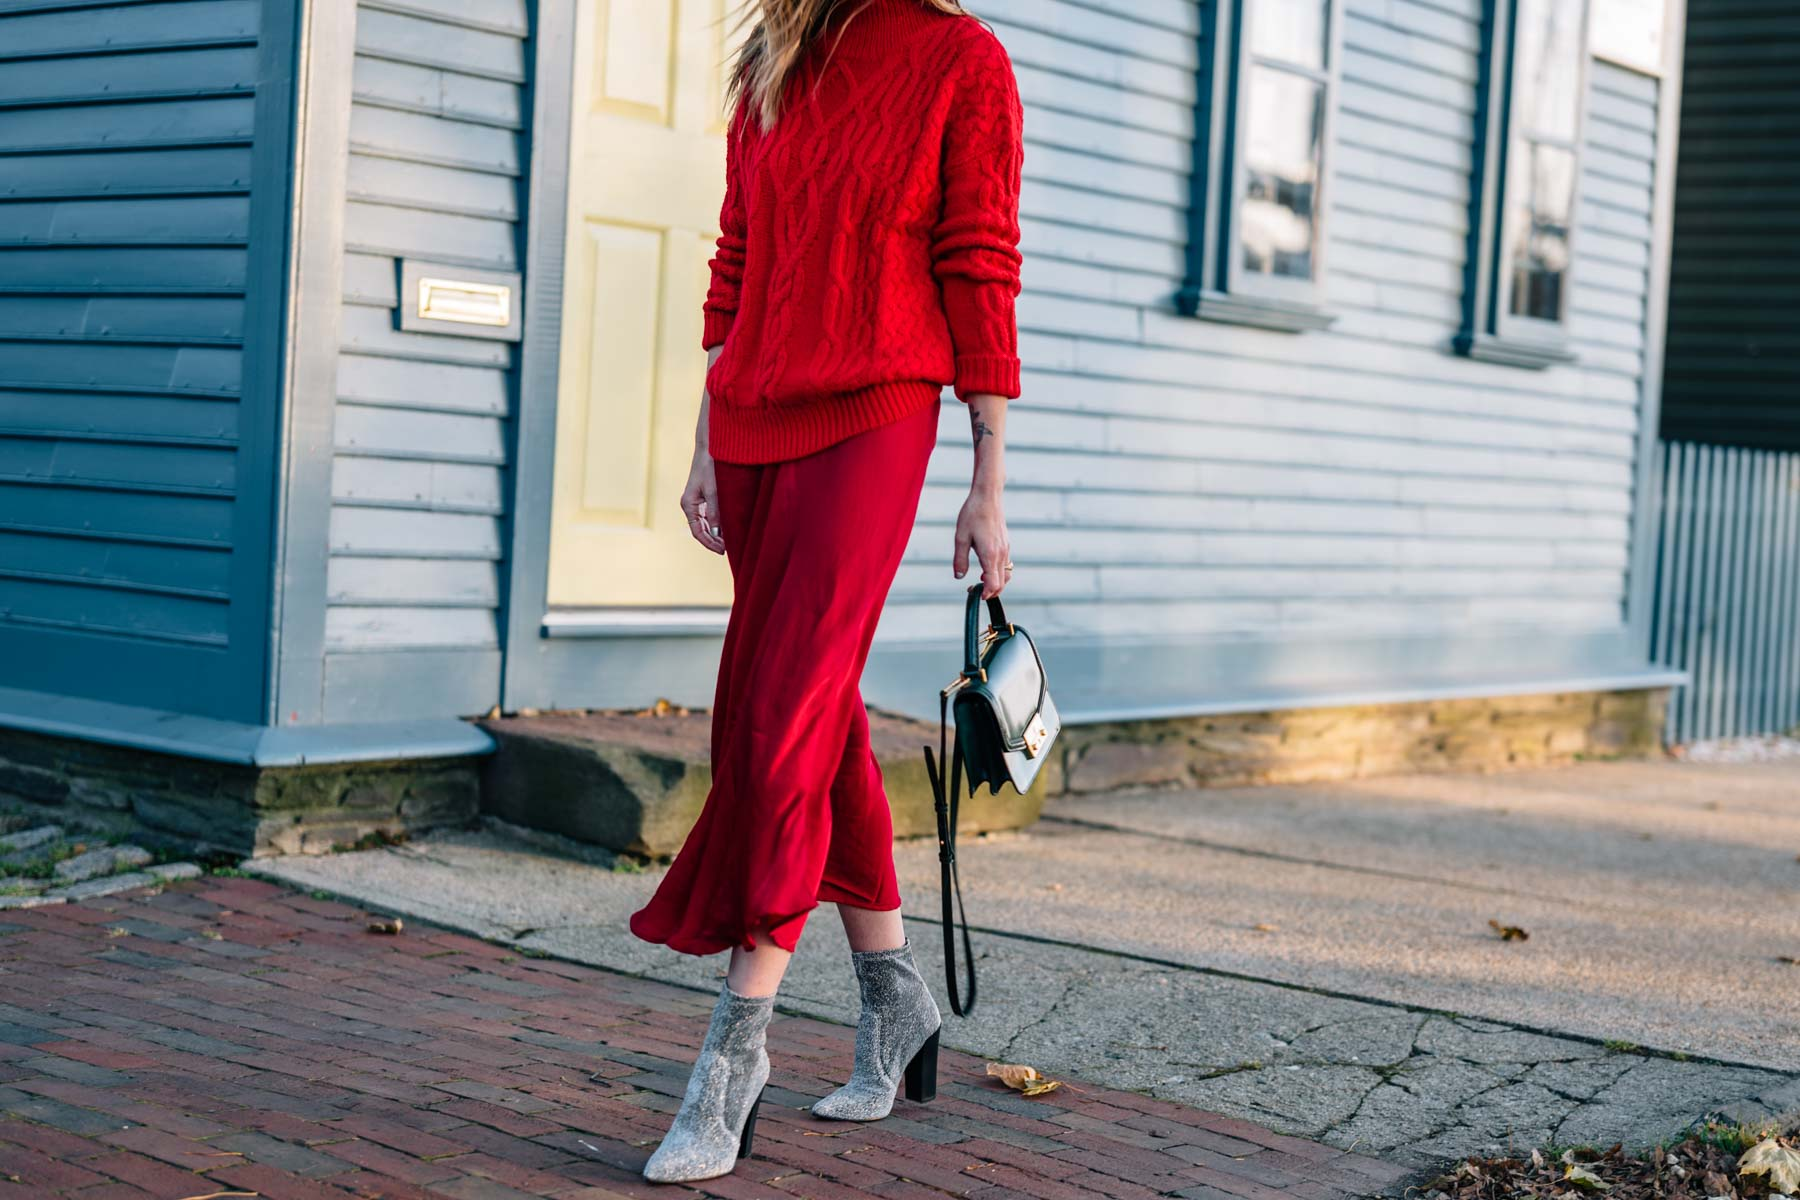 Jess Ann Kirby shares how to wear red on red this holiday season with sparkle ankle boots